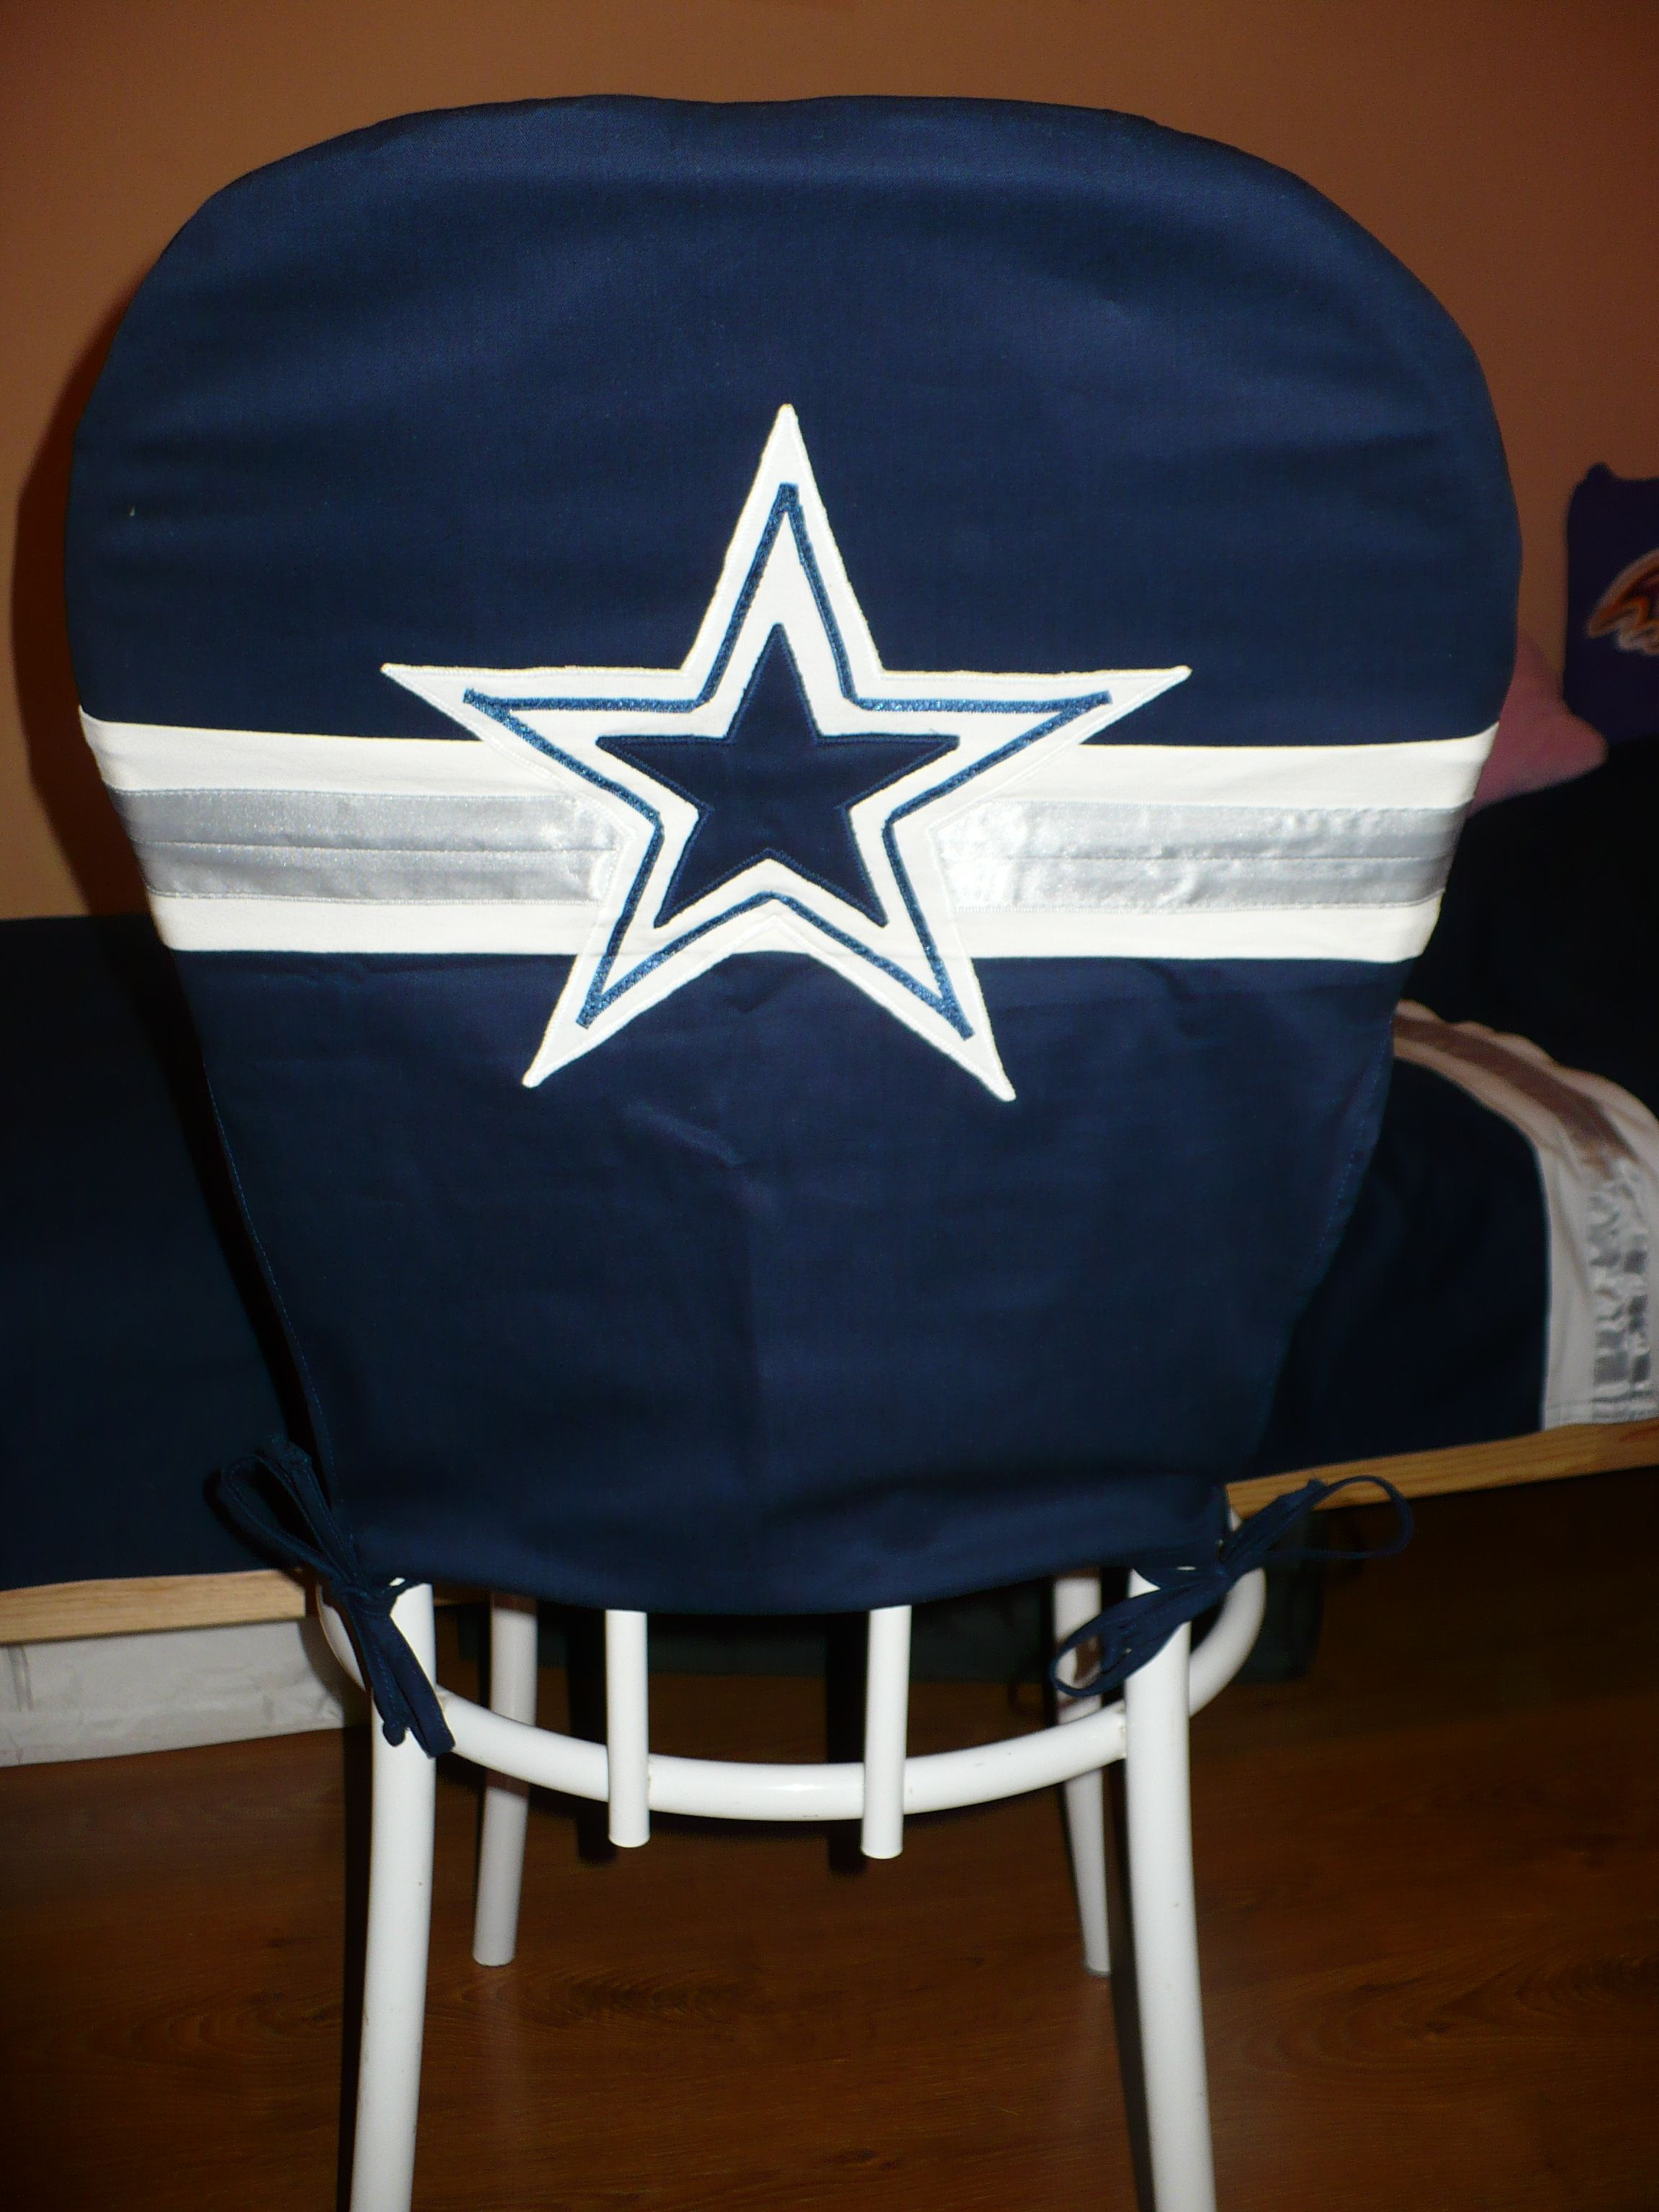 Dallas Cowboys Chair Cover Painting Plastic Lawn Chairs And Covers From The Back Baltimore Ravens